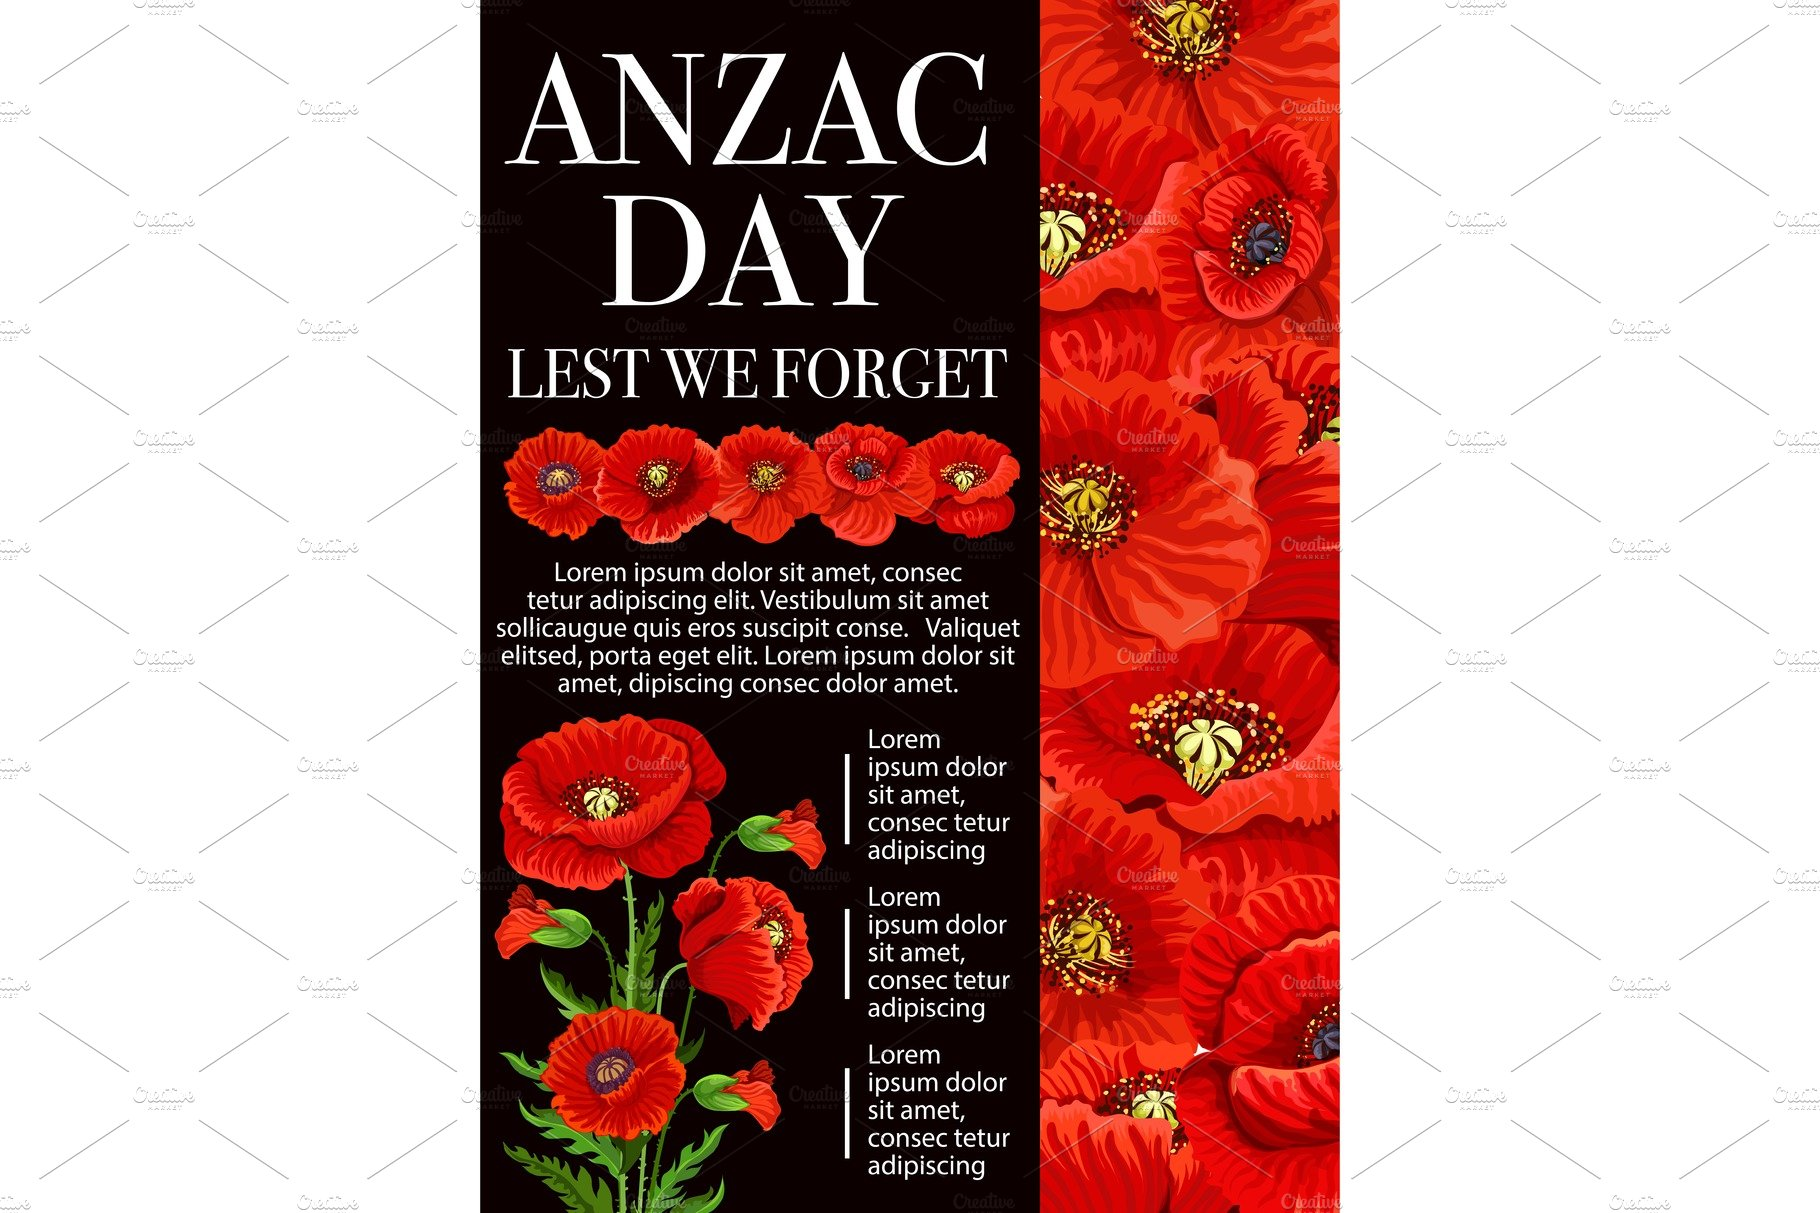 Anzac Day Poppy Flower For Lest We Forget Banner Illustrations